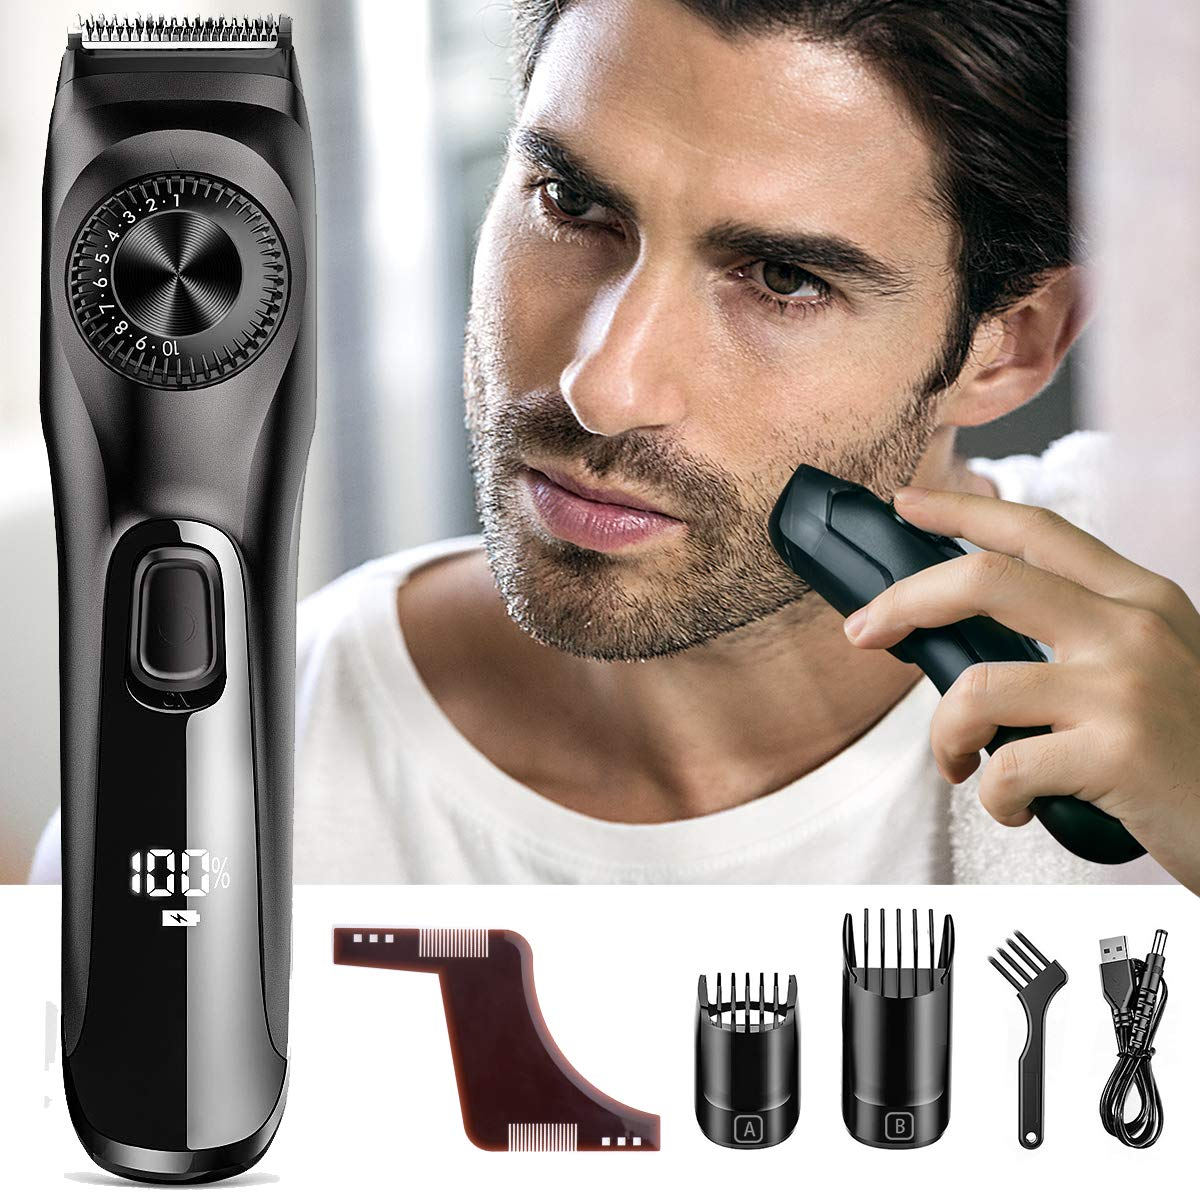 Beard Trimmer For Men Orihea 4th Gen Body Groomer With Mustache Trimmers Facial Hair Trimmer 39 Built In Precise Lengths All In One Beard Kit With Beard Shaping Styling Tool Usb Fast Charging Clippers Trimmers